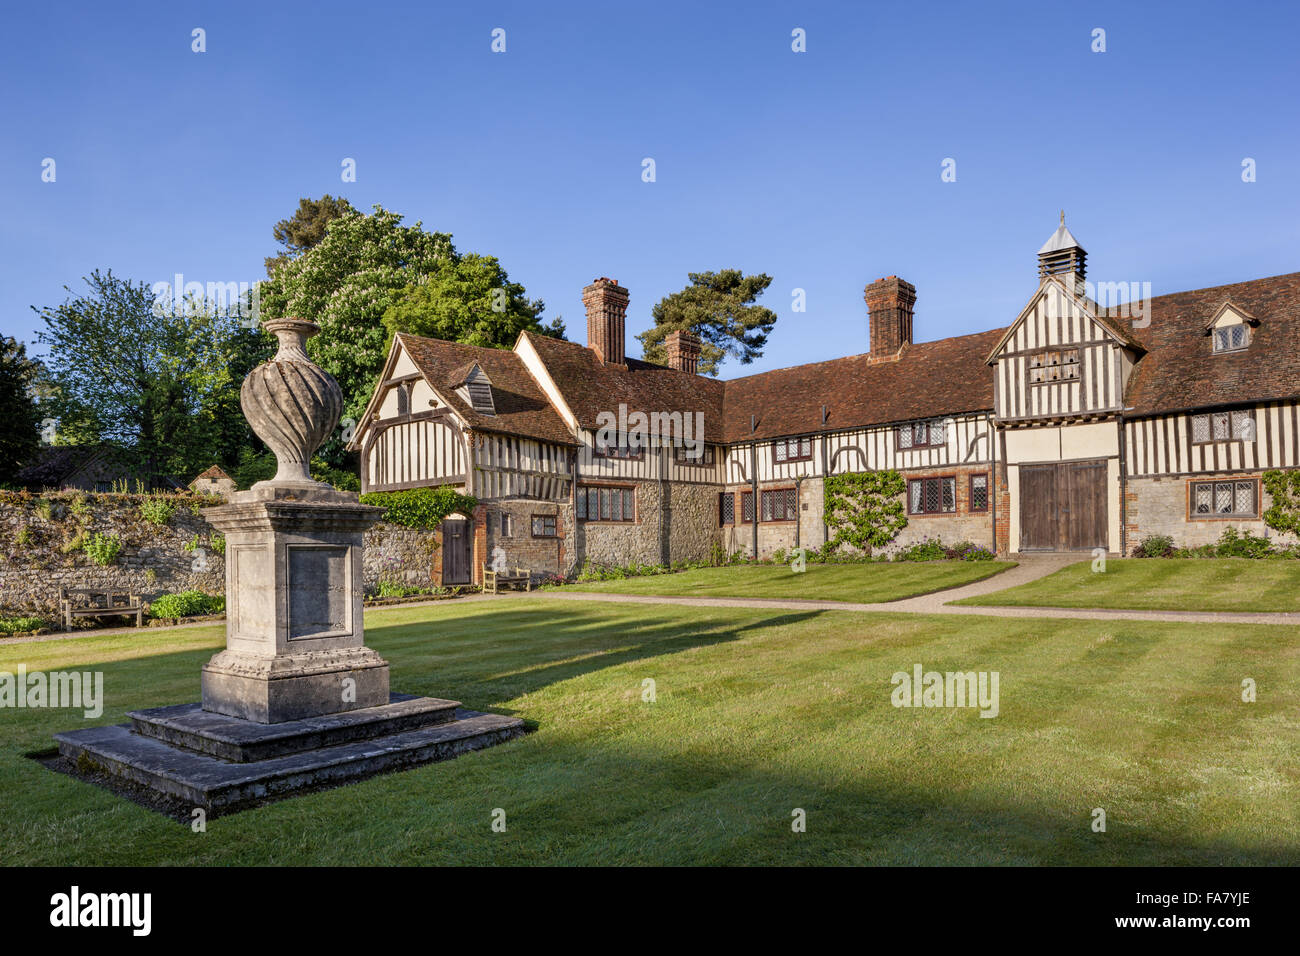 The cottages at Ightham Mote, Kent Stock Photo